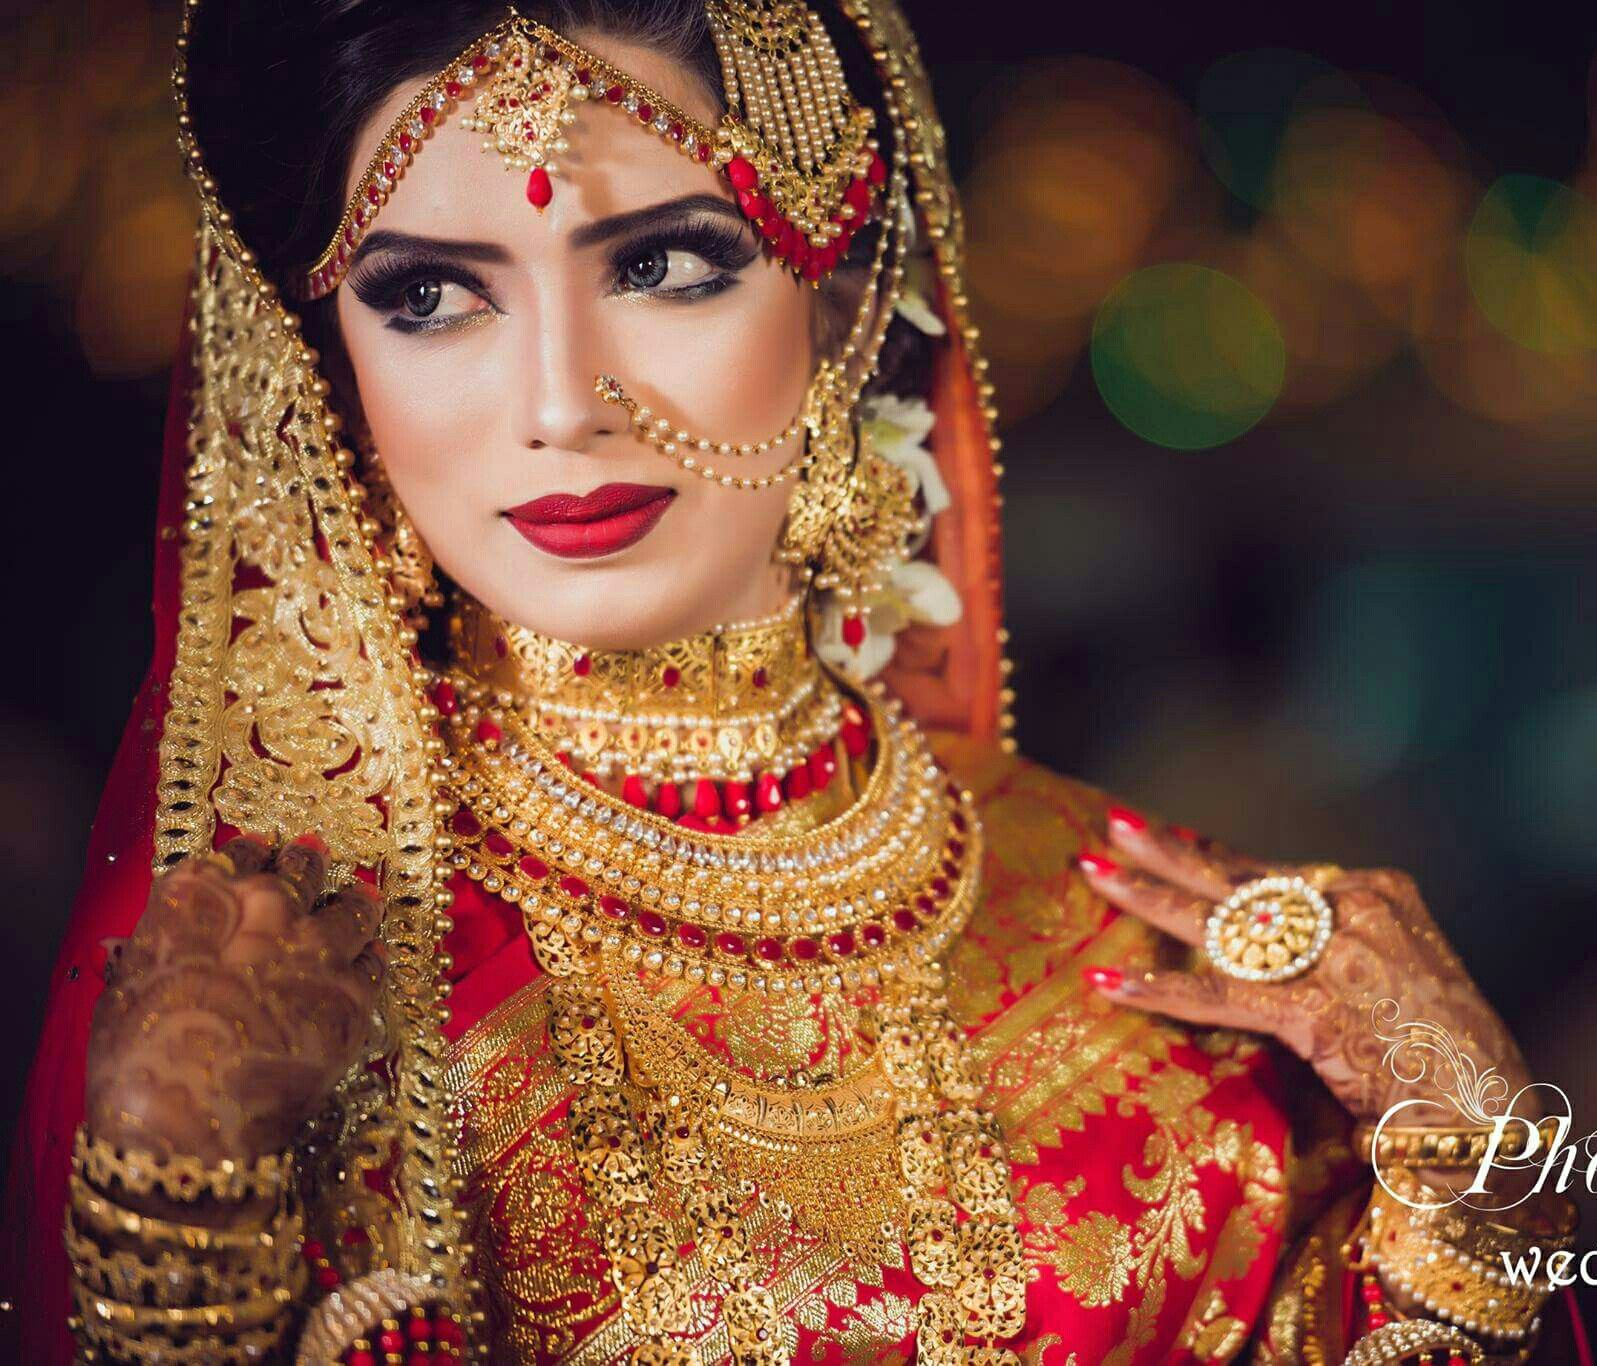 indian wedding photography design%0A Bridal Photography  Nose Rings  Bridal Jewelry  Beaded Jewelry  Bead  Jewellery  Indian Beauty  Blouse Designs  Wedding Ceremony  Central Asia